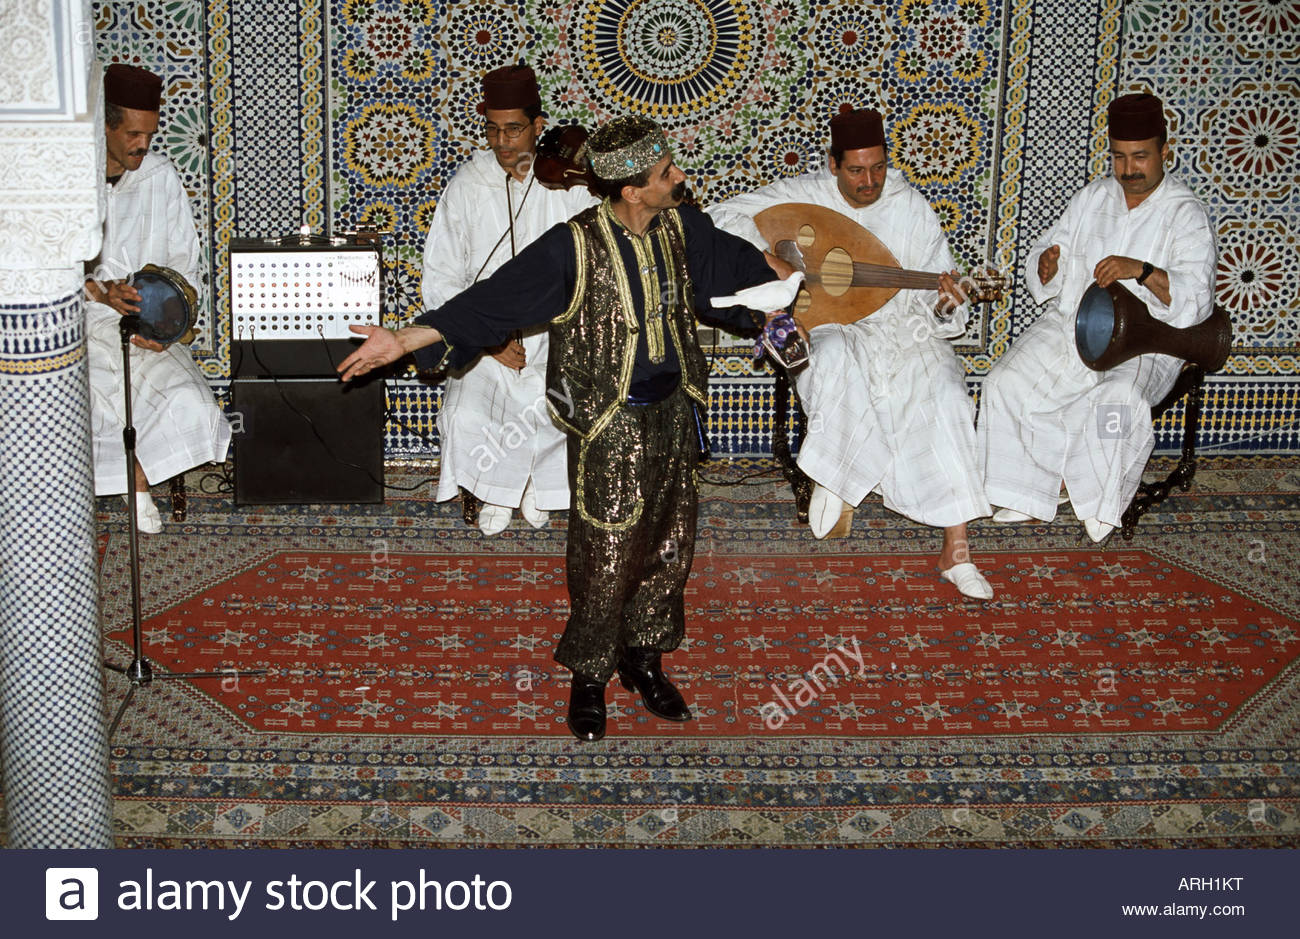 Musical group performing in a show, Meknes, Morocco - Stock Image